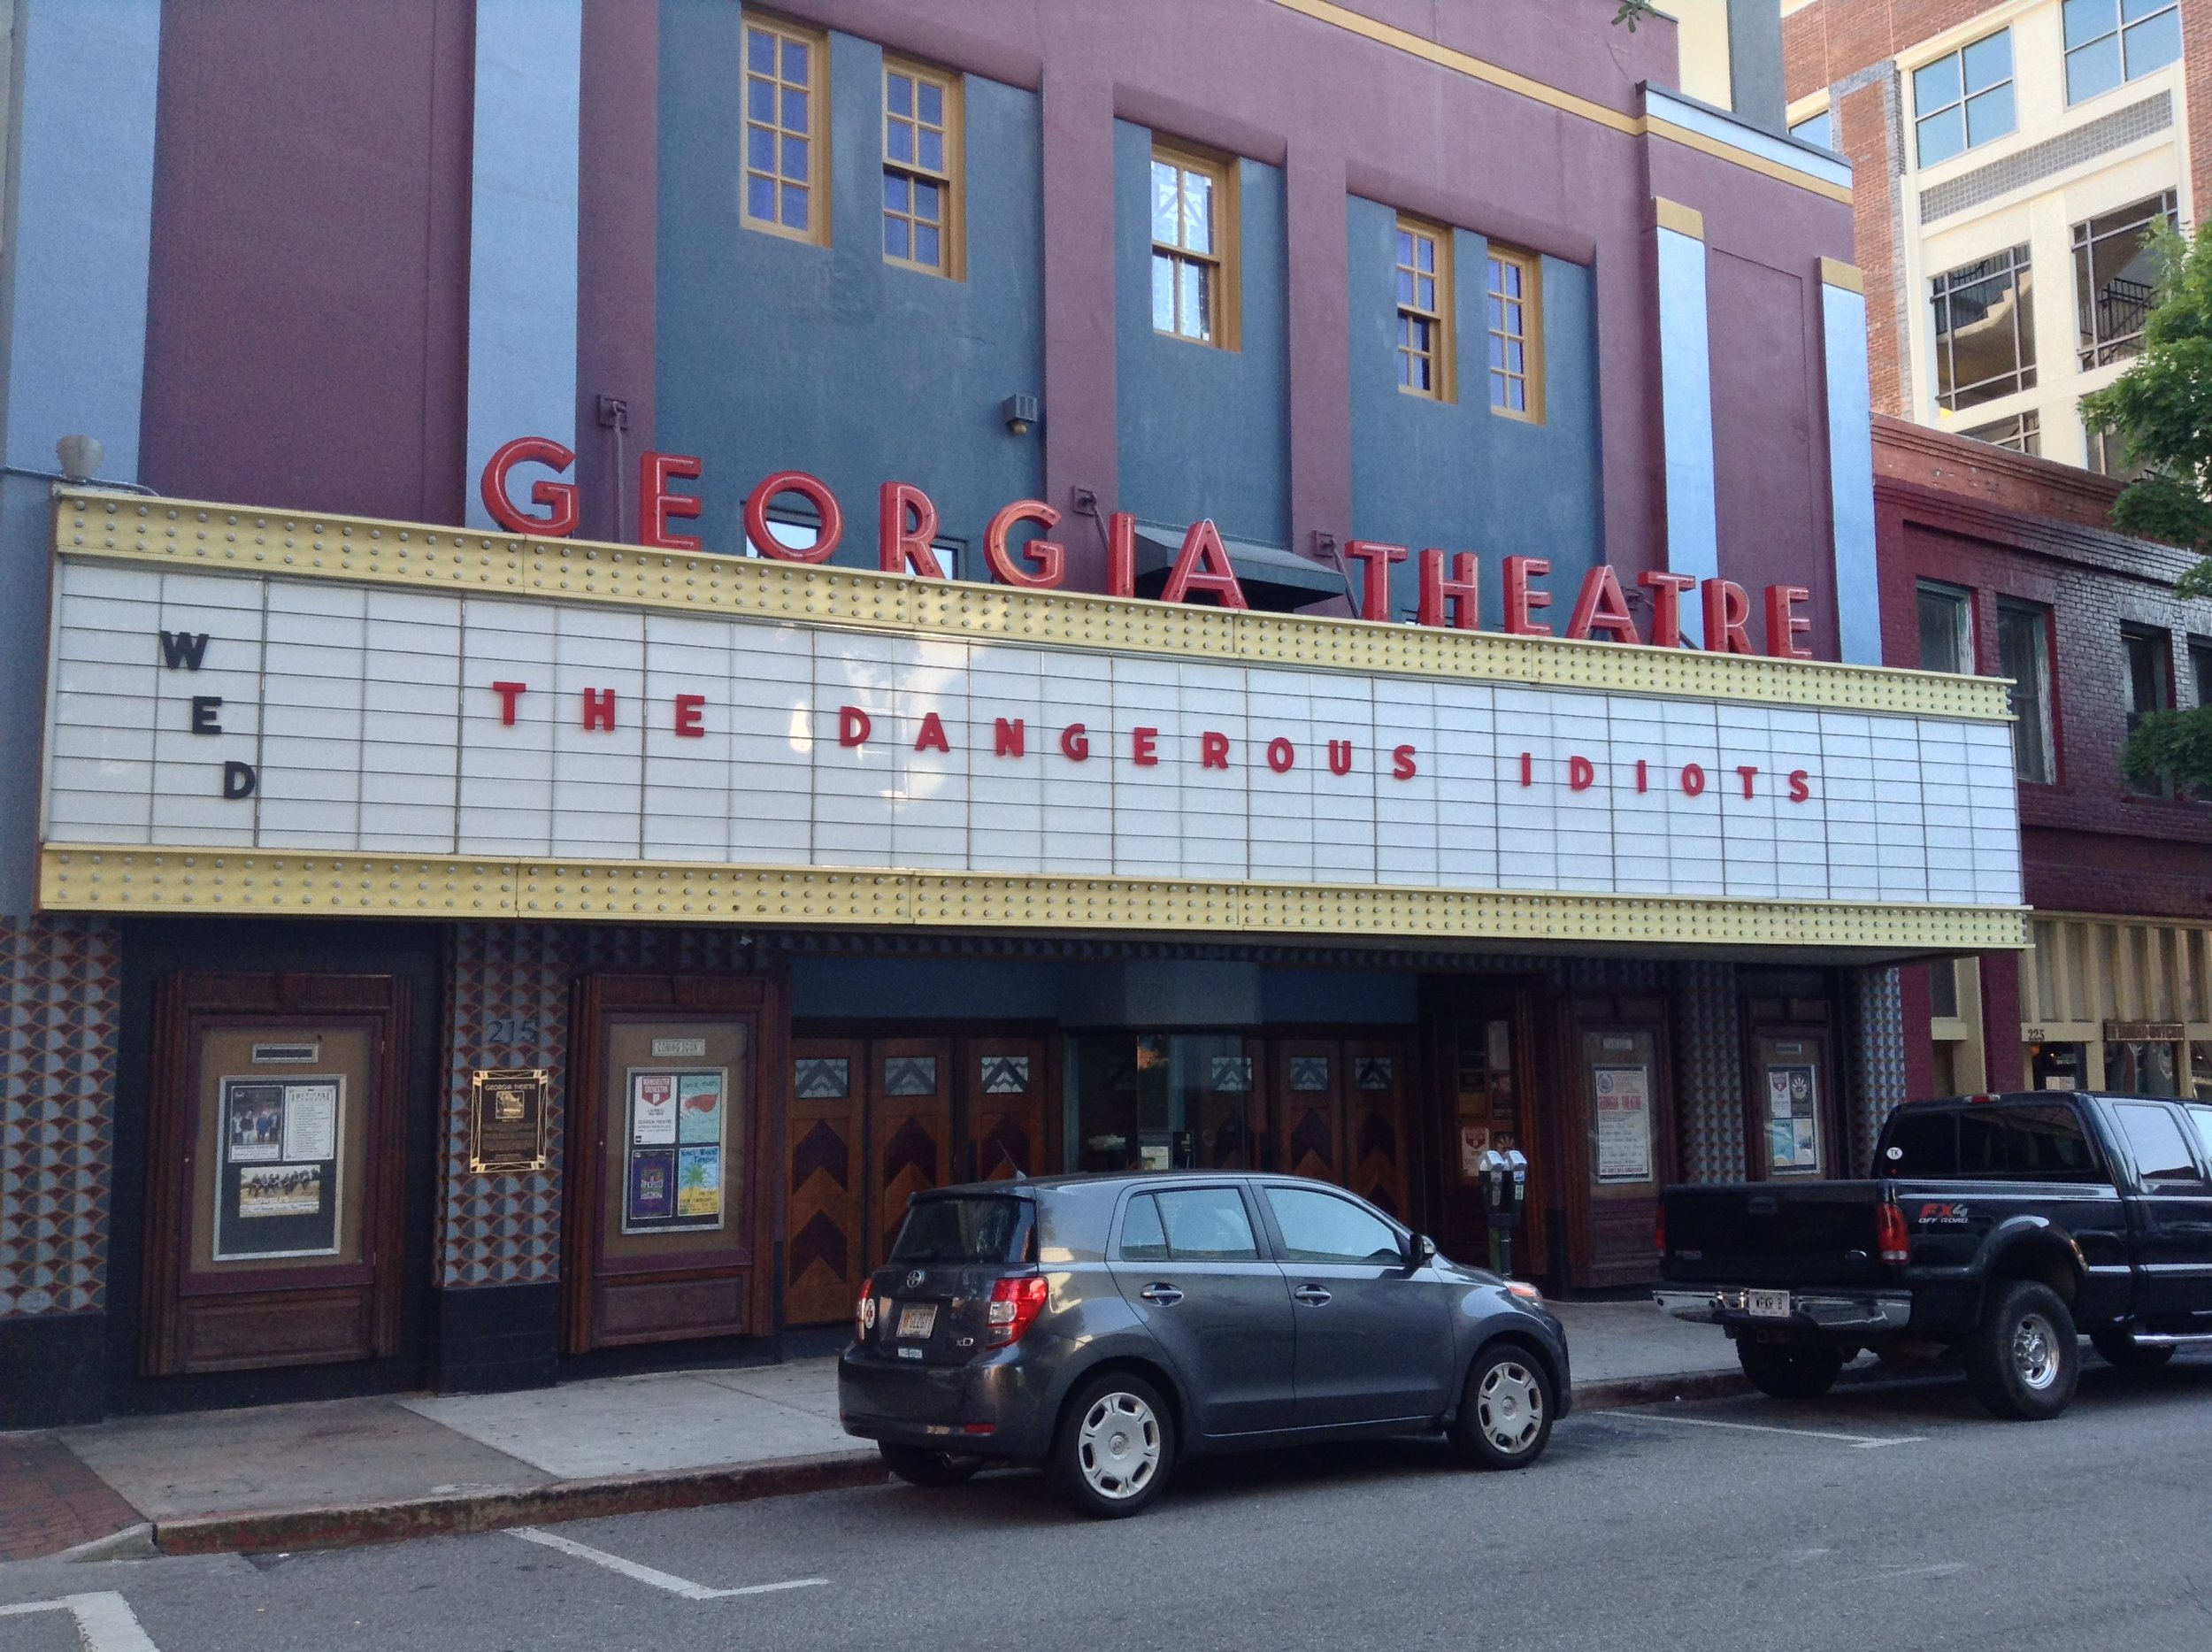 the-dangerous-idiots-at-the-georgia-theatre-in-athens-ga-07-16-14-1.jpg